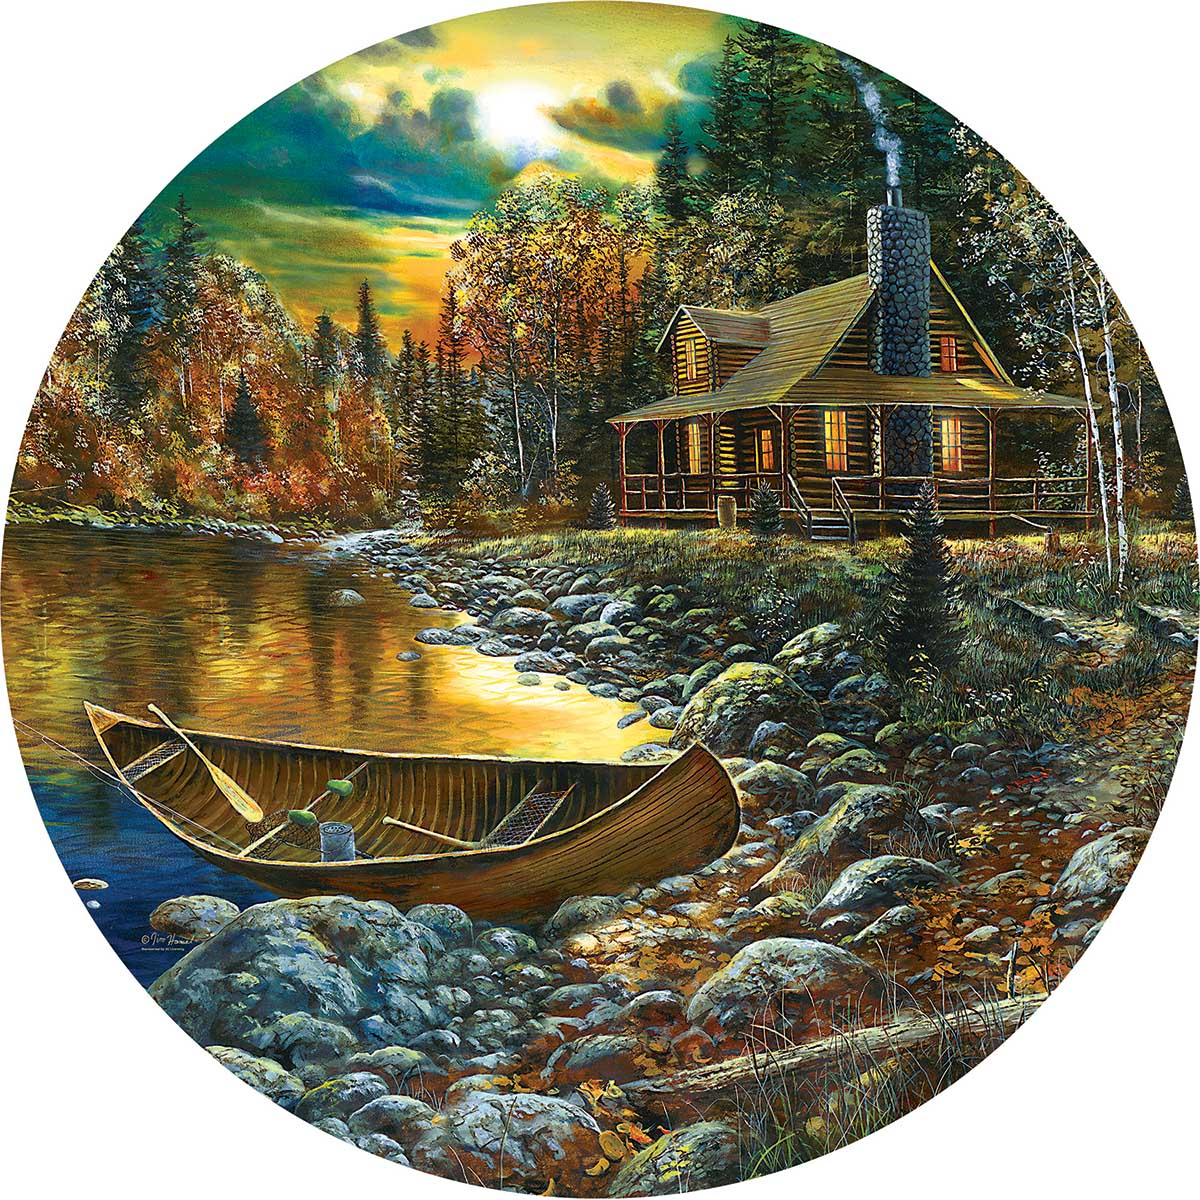 Fall Cabin Fall Round Jigsaw Puzzle